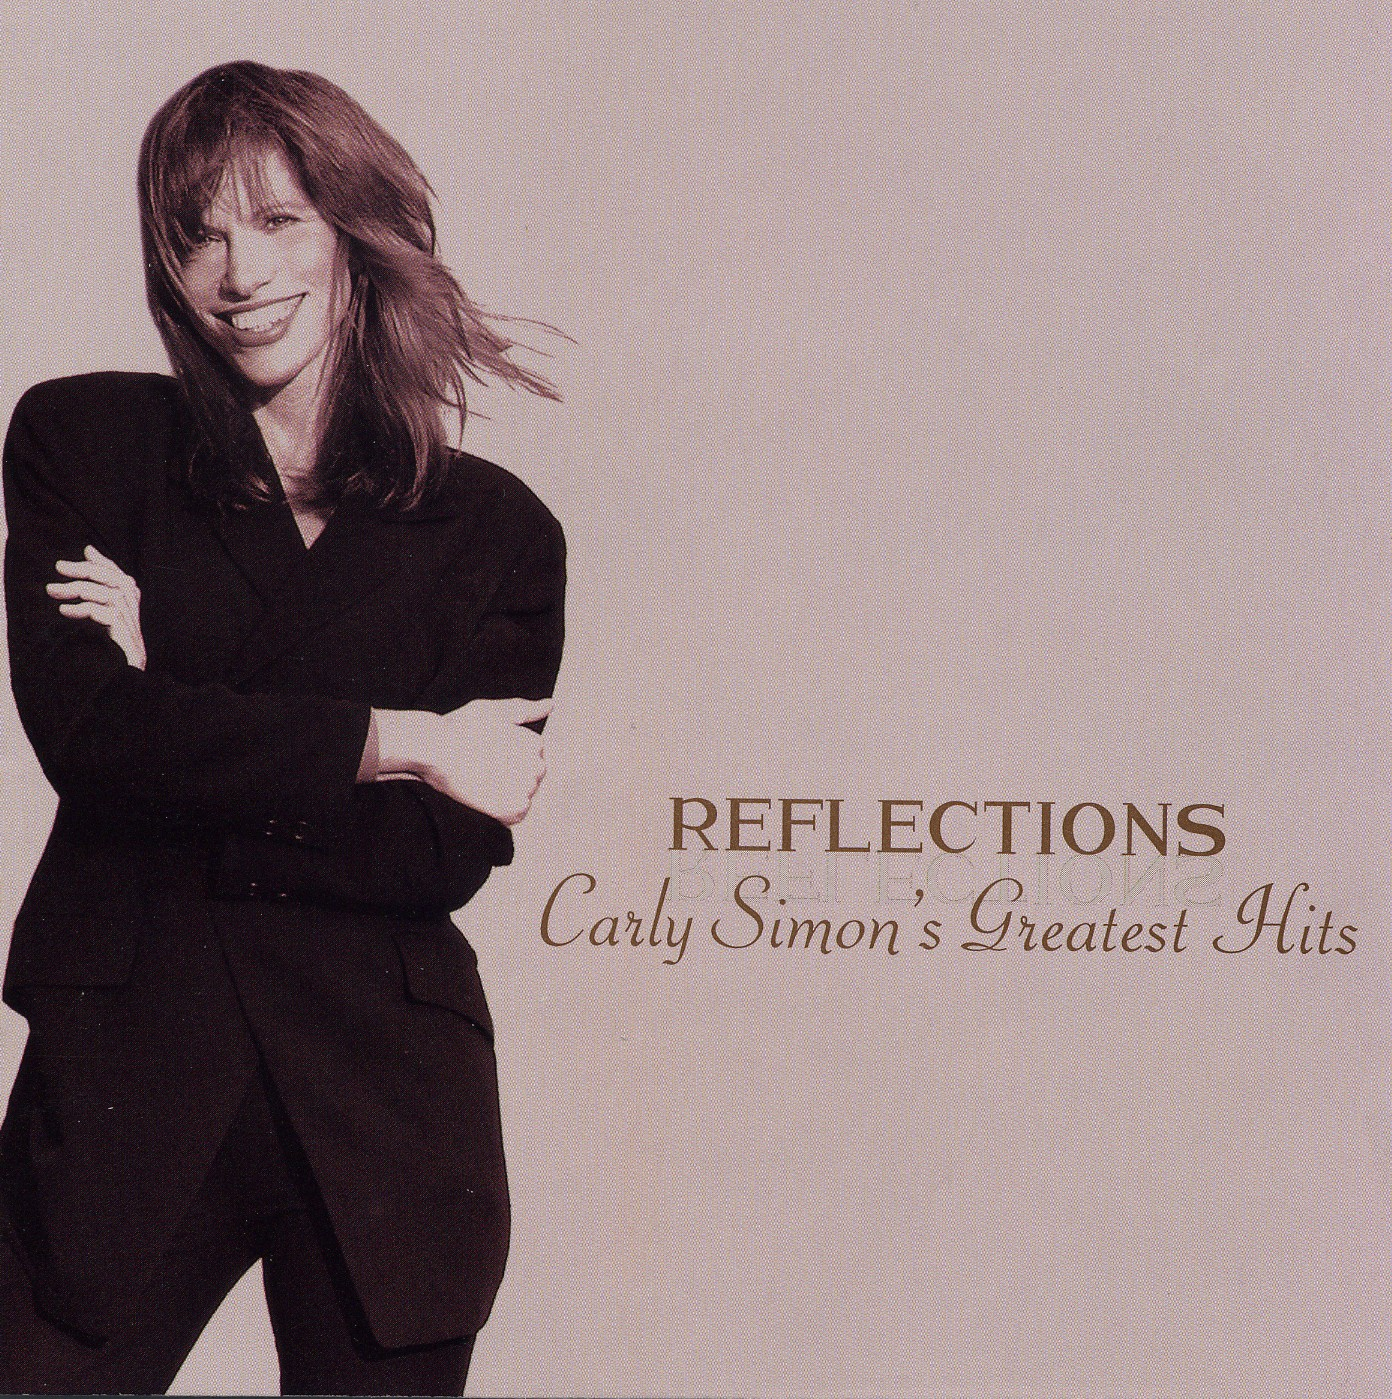 Reflections ~ Carly Simon's Greatest Hits CD1 - Carly Simon